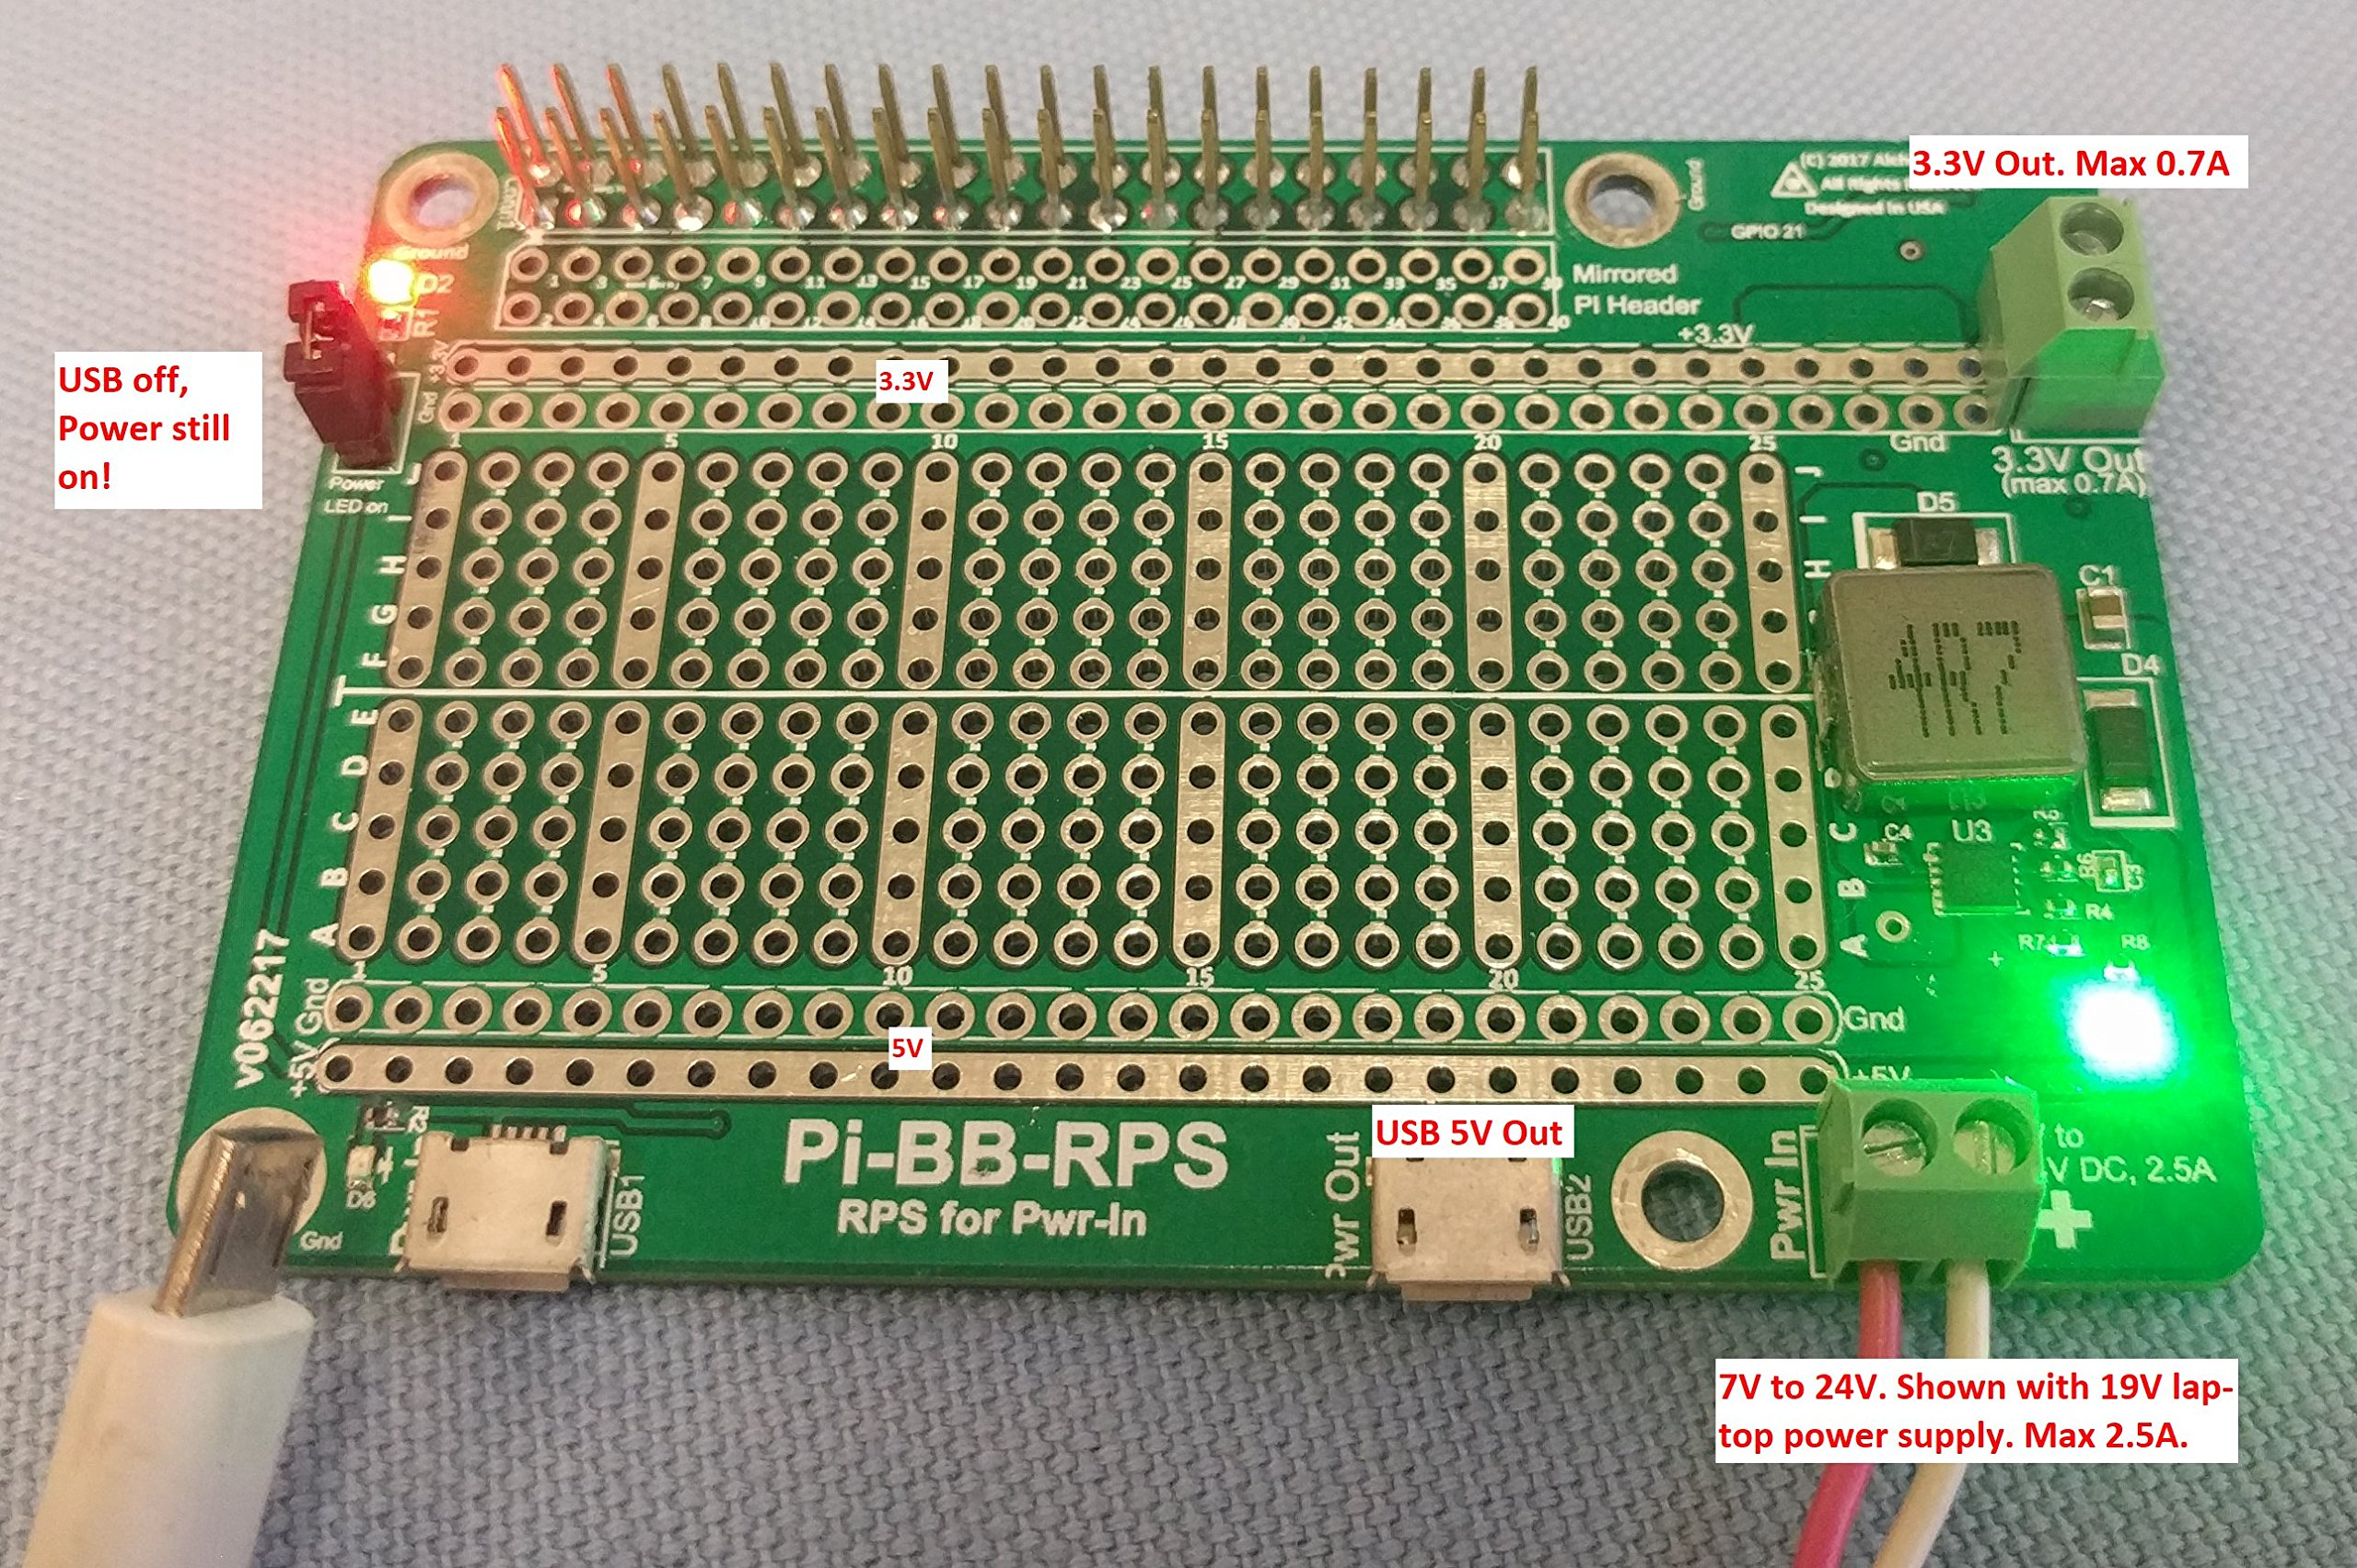 Alchemy Power Inc. Pi-BB-RPS Powered Breadboard with Redundant Power Supply (RPS) and more... by Alchemy Power Inc. TM (Image #8)